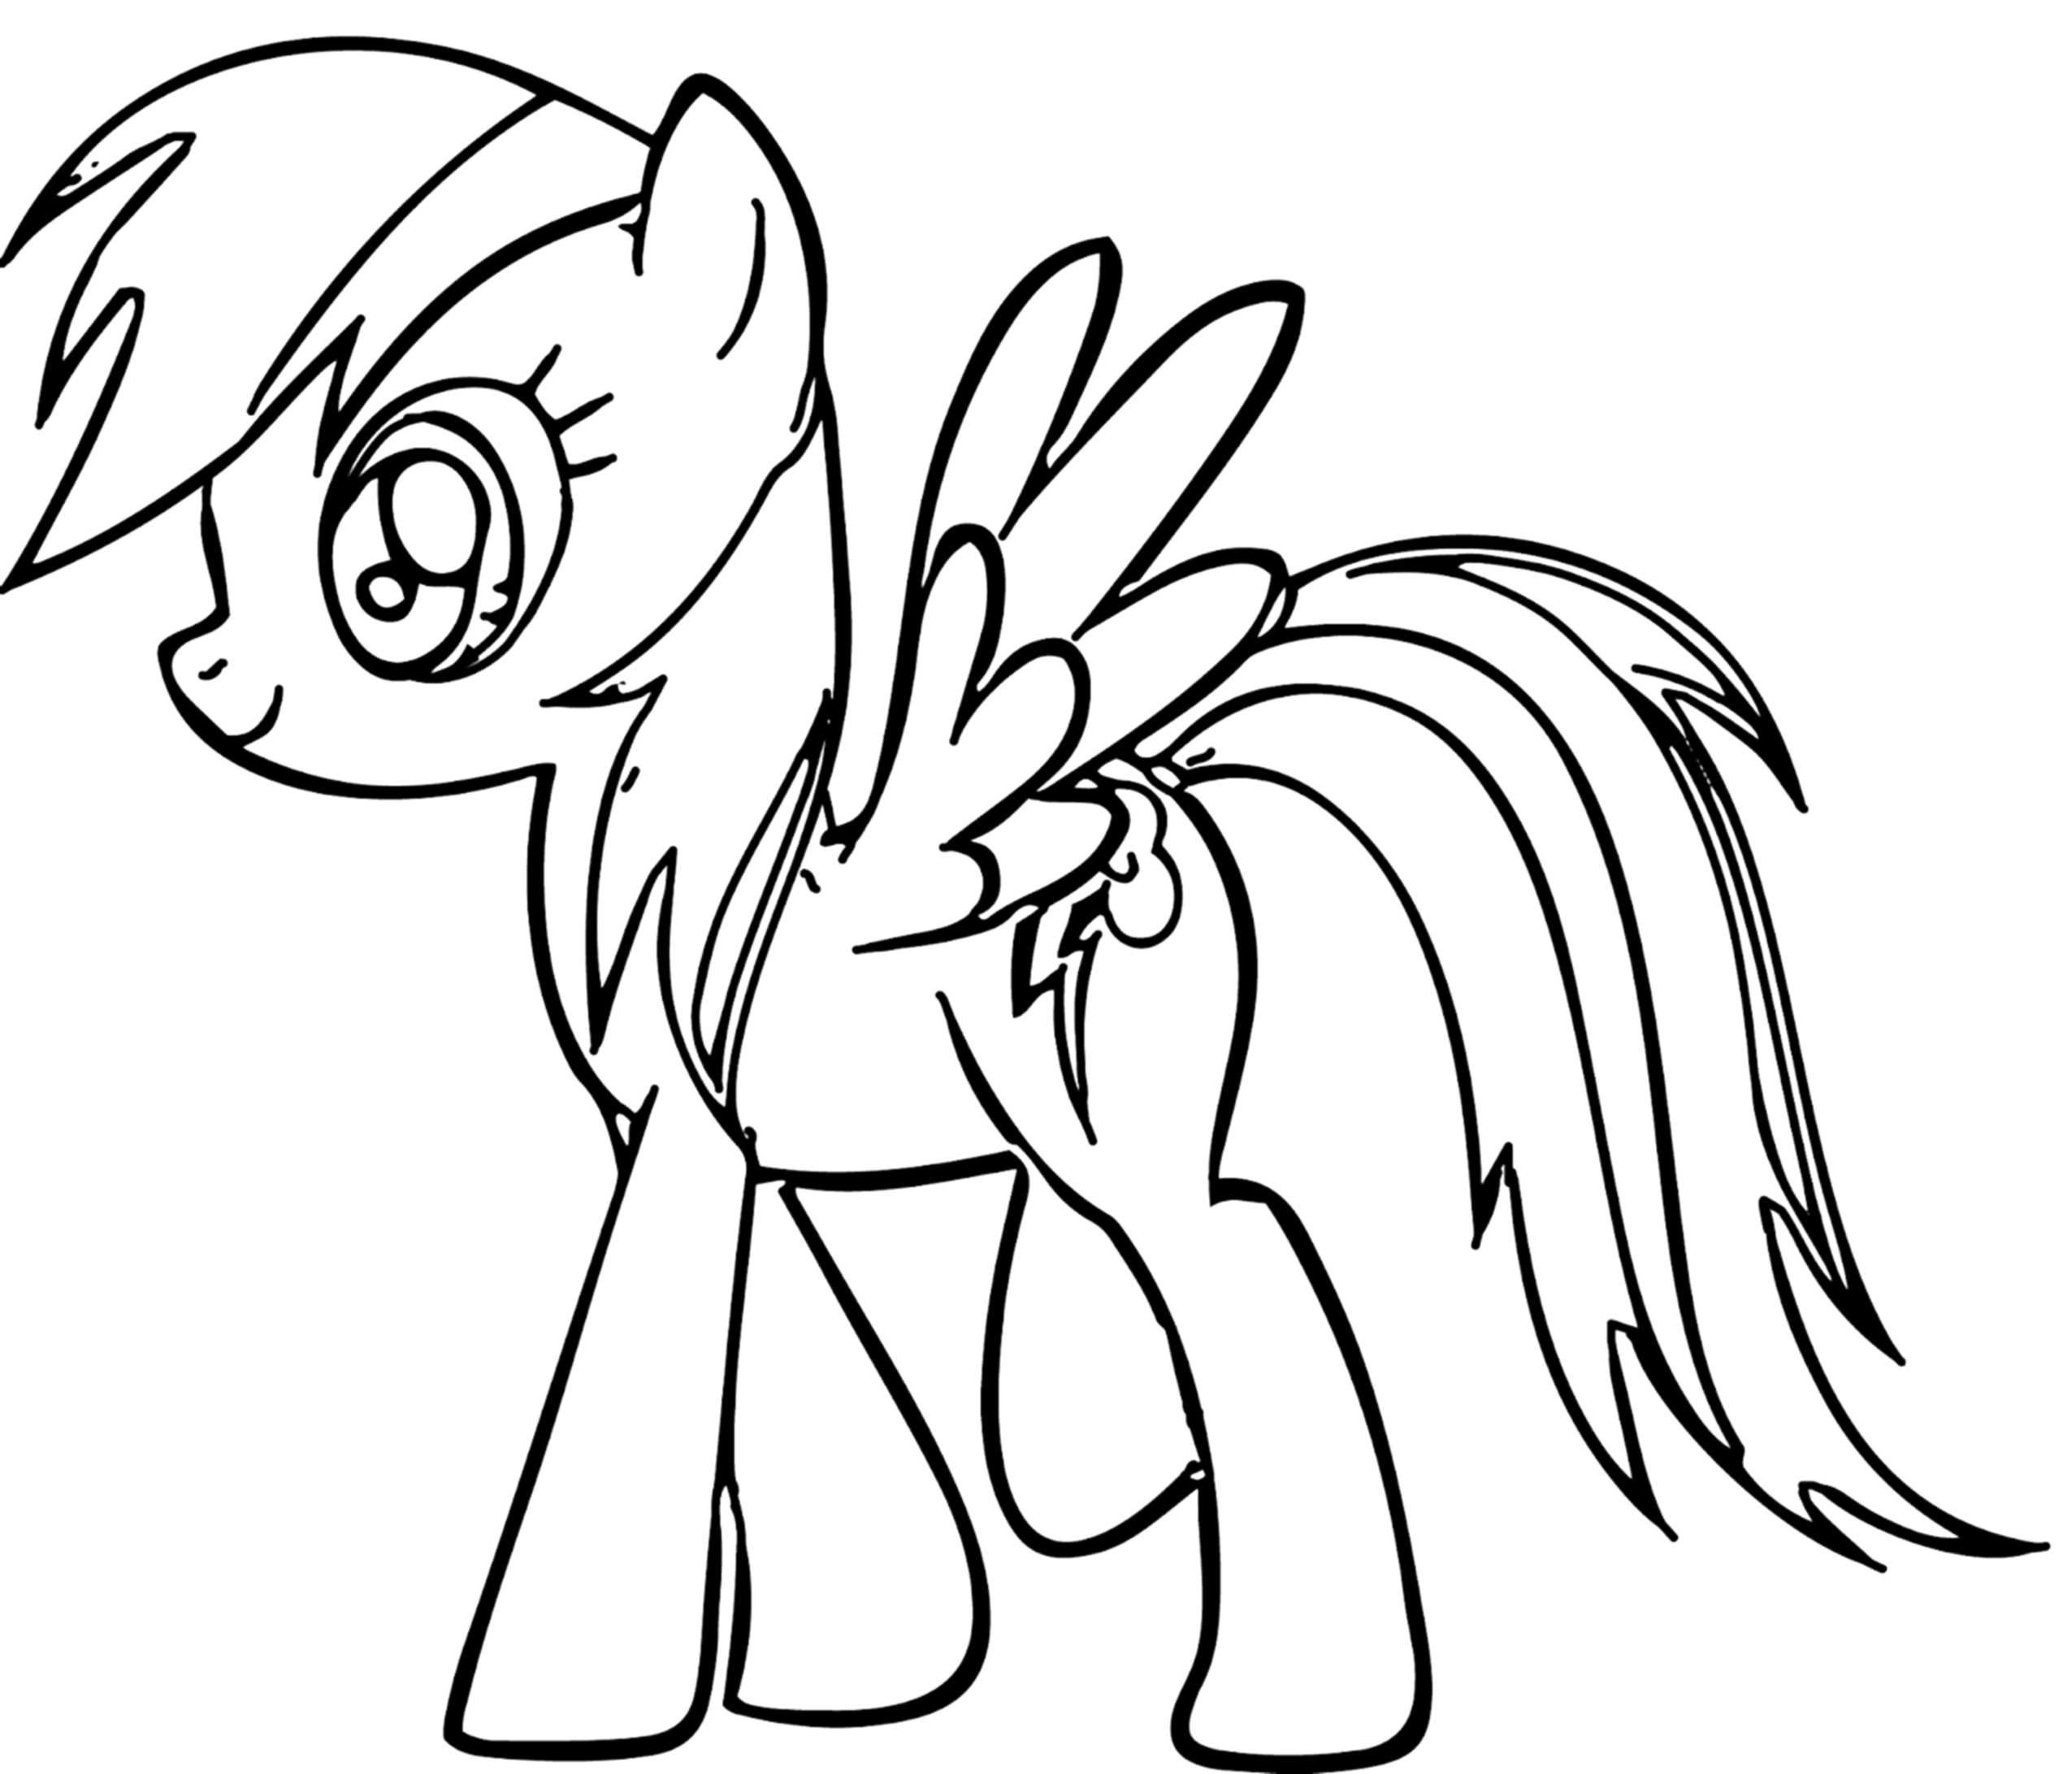 Rainbow Pictures to Print Rainbow Dash Coloring Pages Best Coloring Pages for Kids